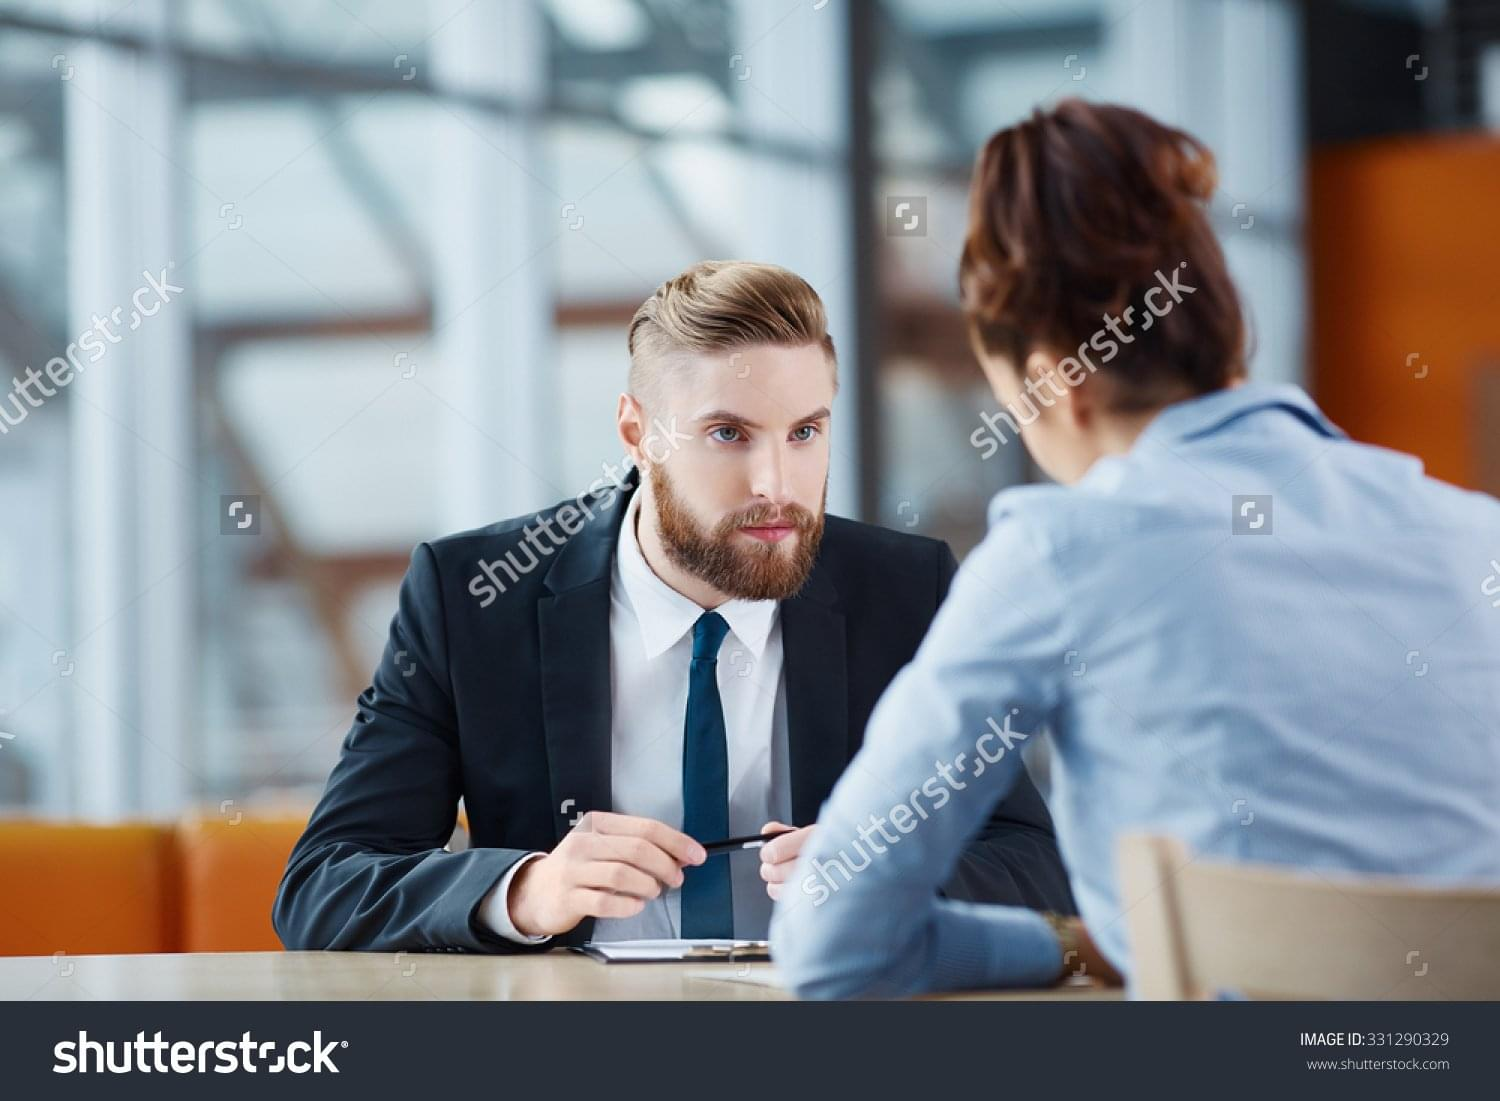 stock-photo-recruiter-asking-questions-during-job-interview-331290329